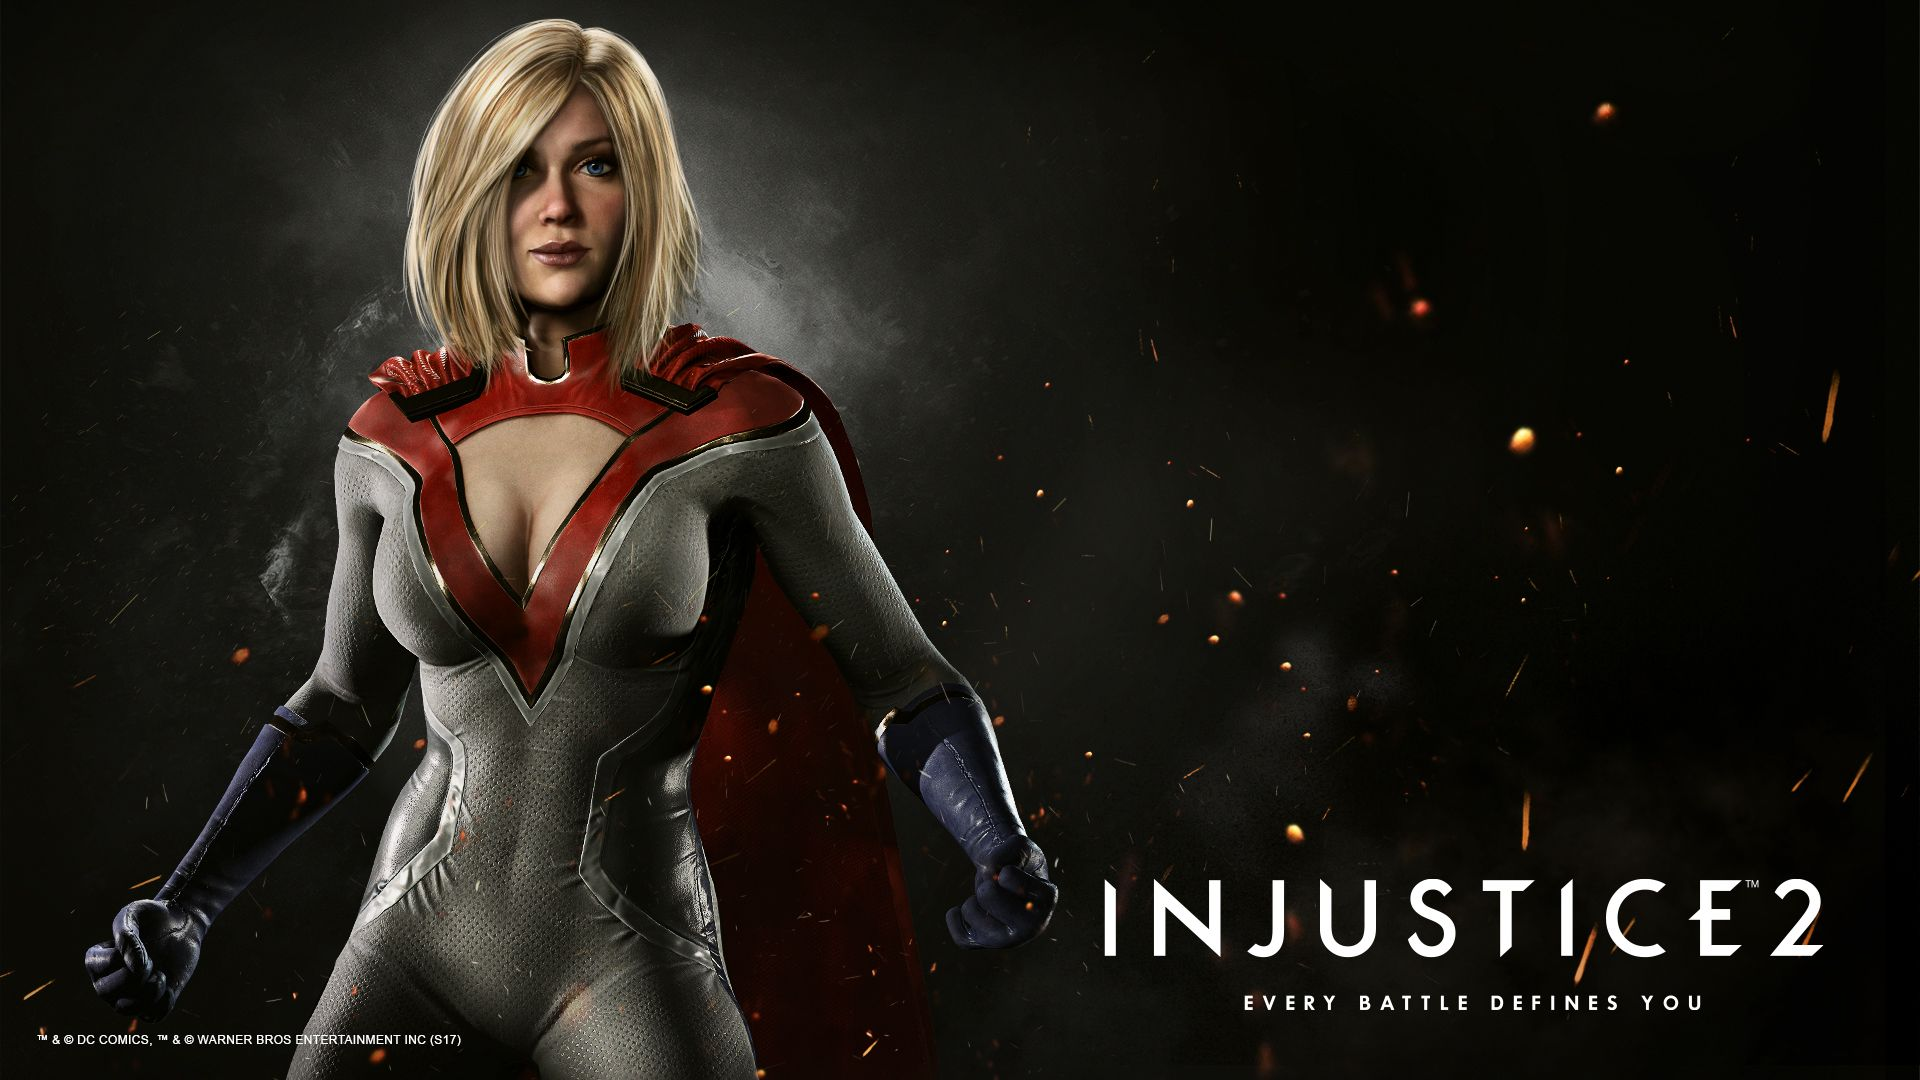 Image injustice2 power girl wallpaper 1920x1080 34g injustice injustice2 power girl wallpaper 1920x1080 34g voltagebd Gallery